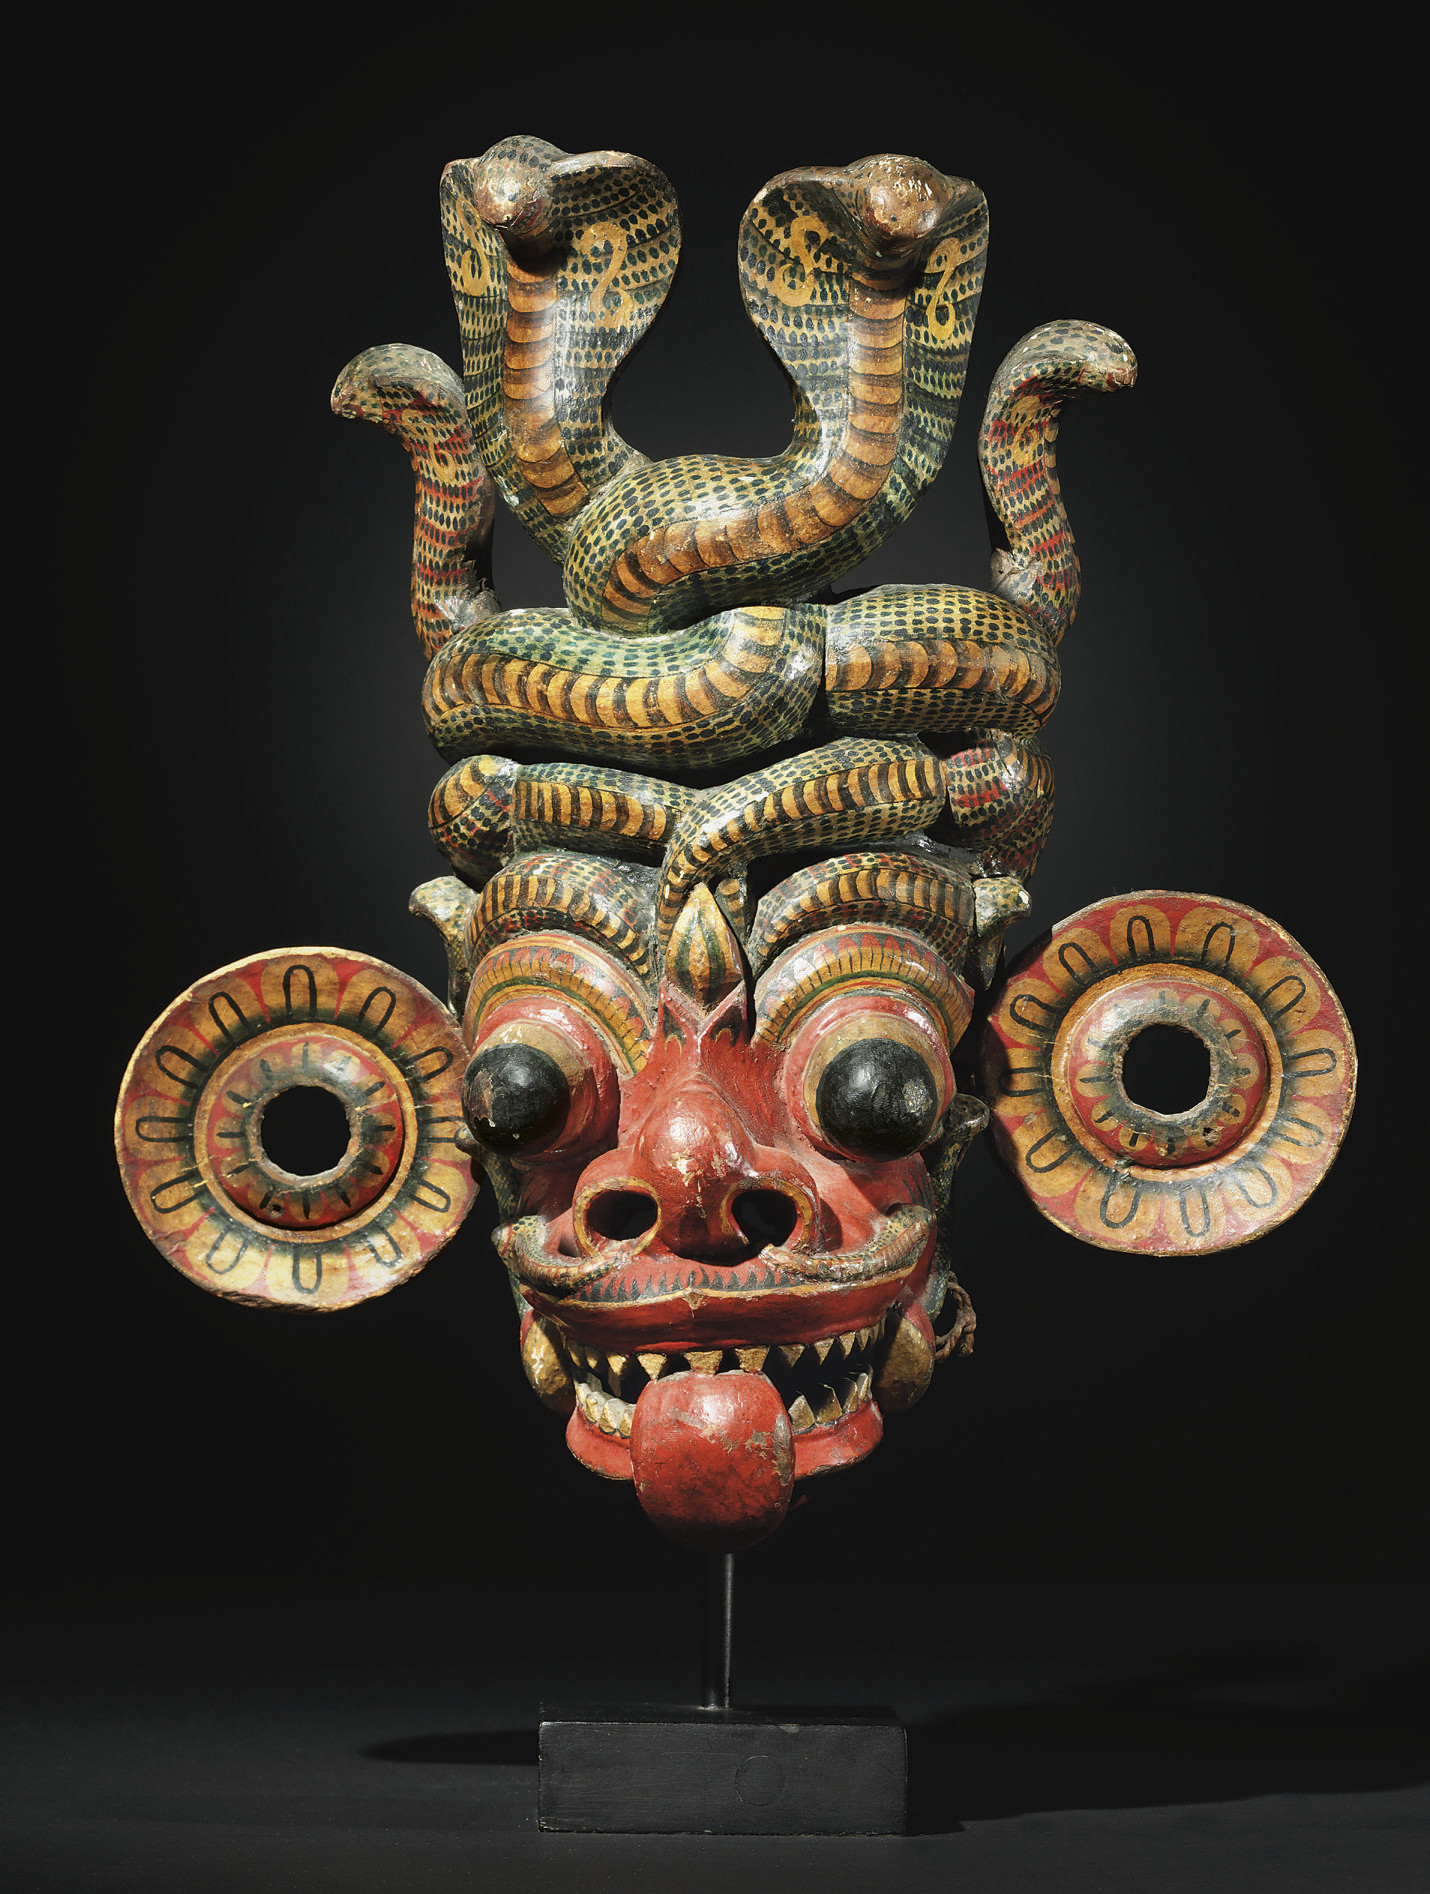 A SRI LANKA MASK